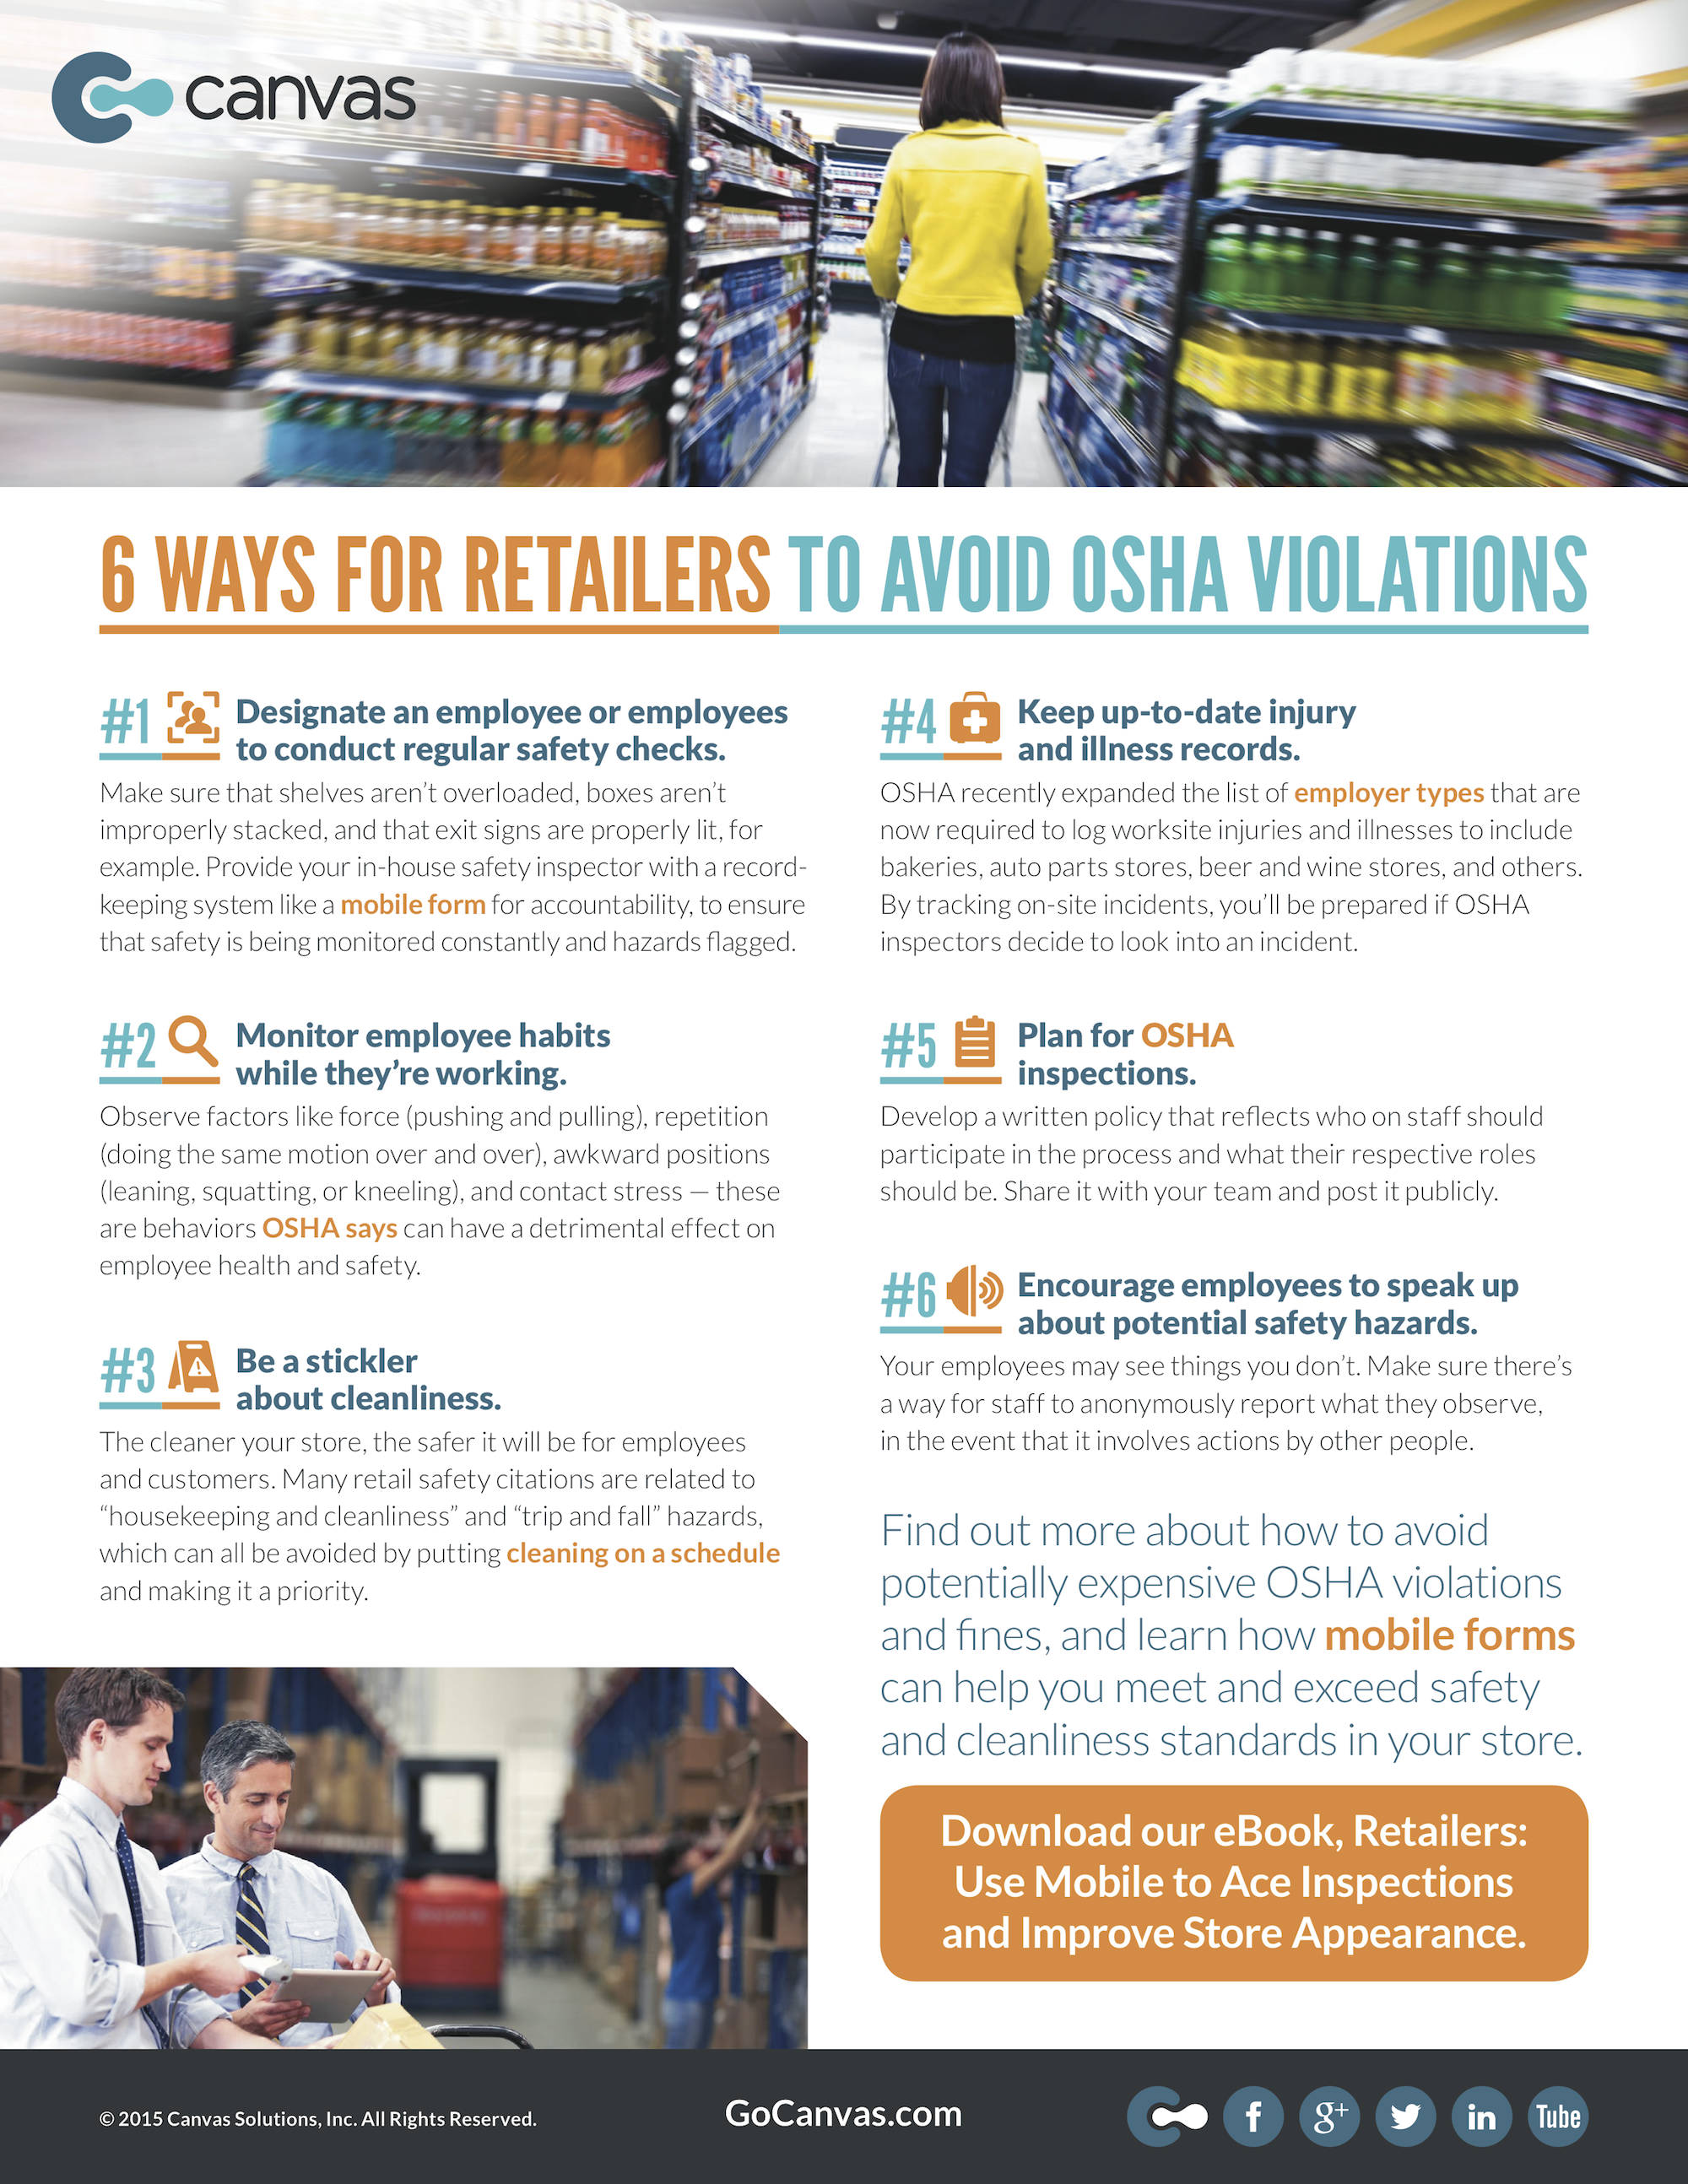 6 Ways for Retailers to Avoid OSHA Violations